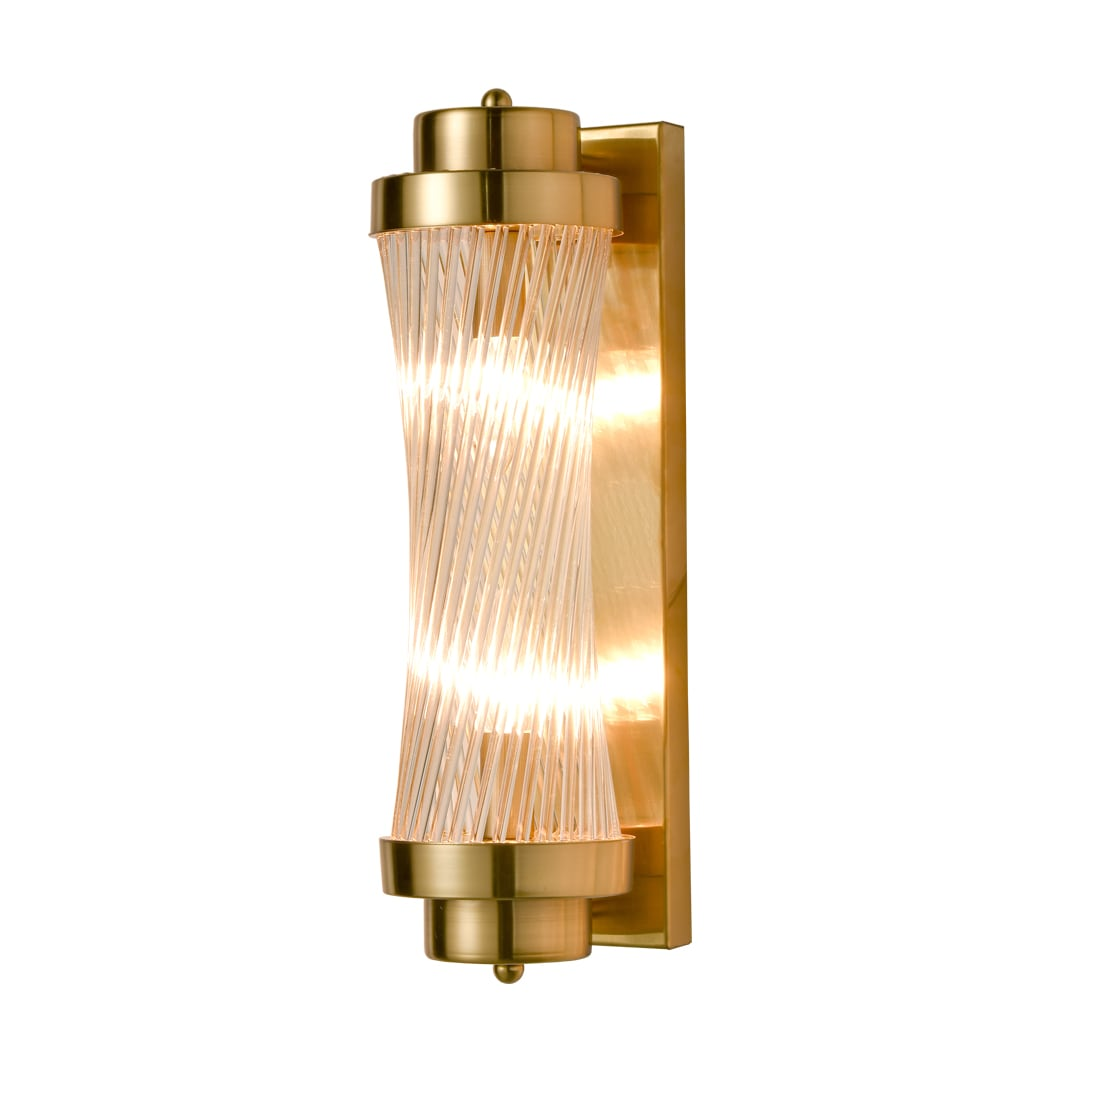 Modern Brass Wall Sconce 2-Light Bathroom Vanity Light